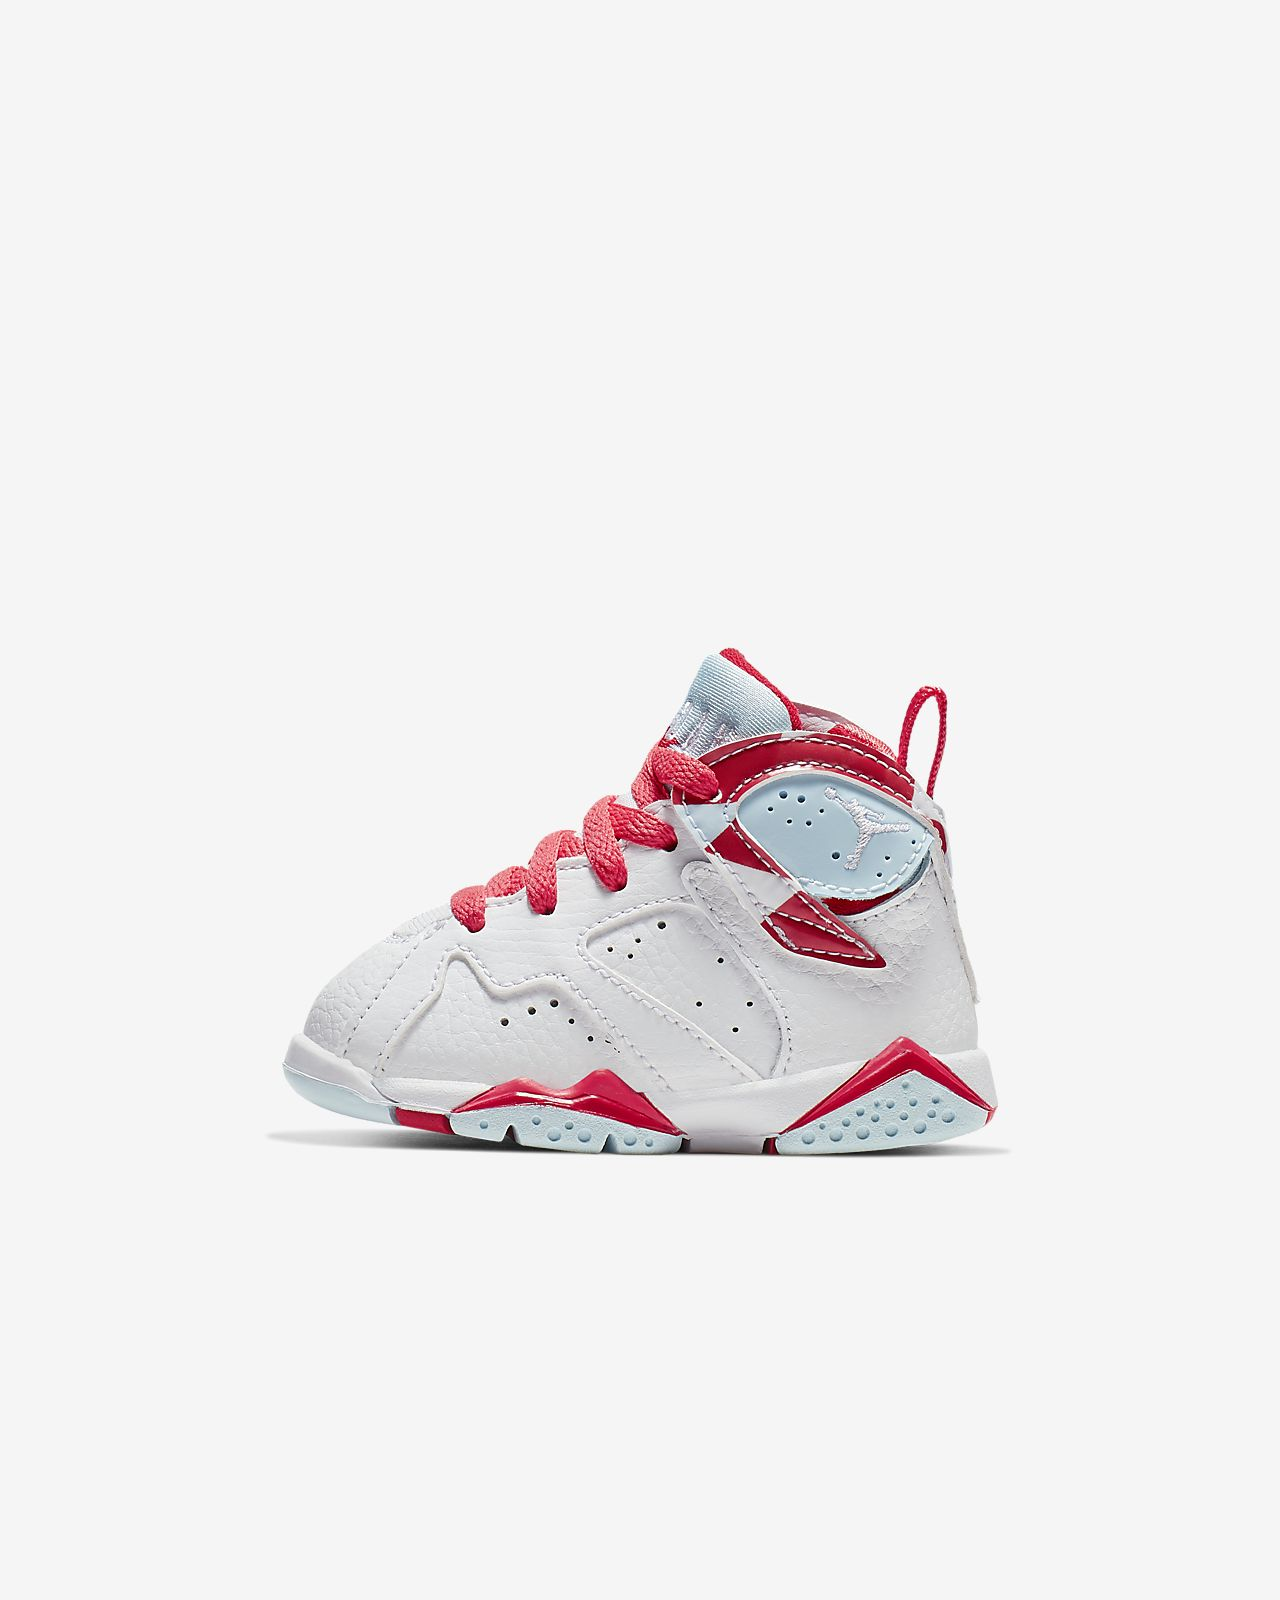 Air Jordan 7 Retro 30th (2c-10c) Infant/Toddler Girls' Shoe